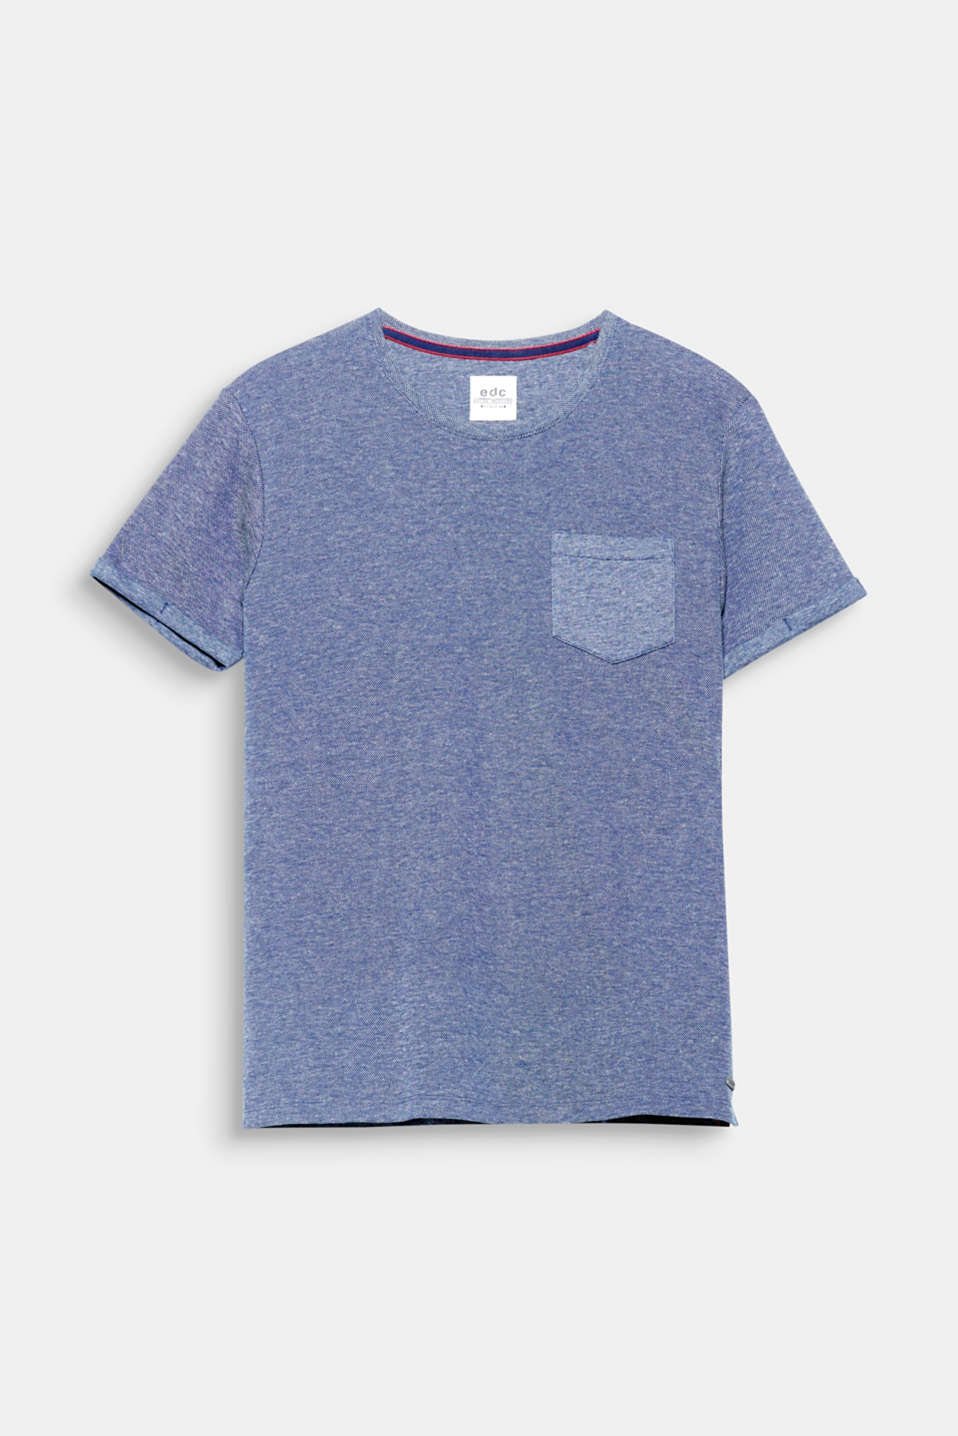 We love texture! The mix of materials made up of jersey and piqué gives this T-shirt an exciting mix of textures.